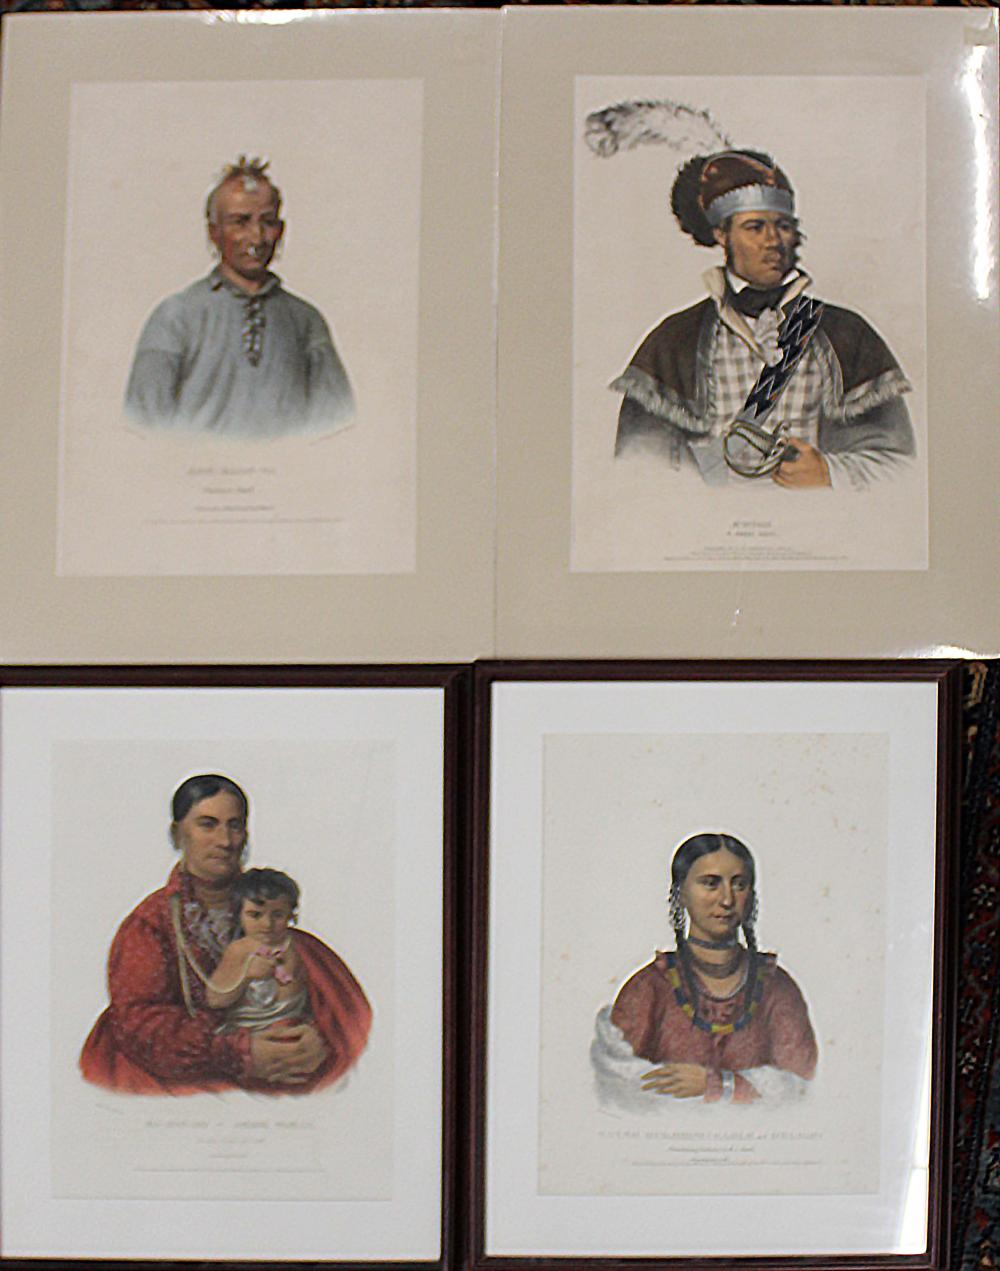 McKenny and Hall hand colored lithographs